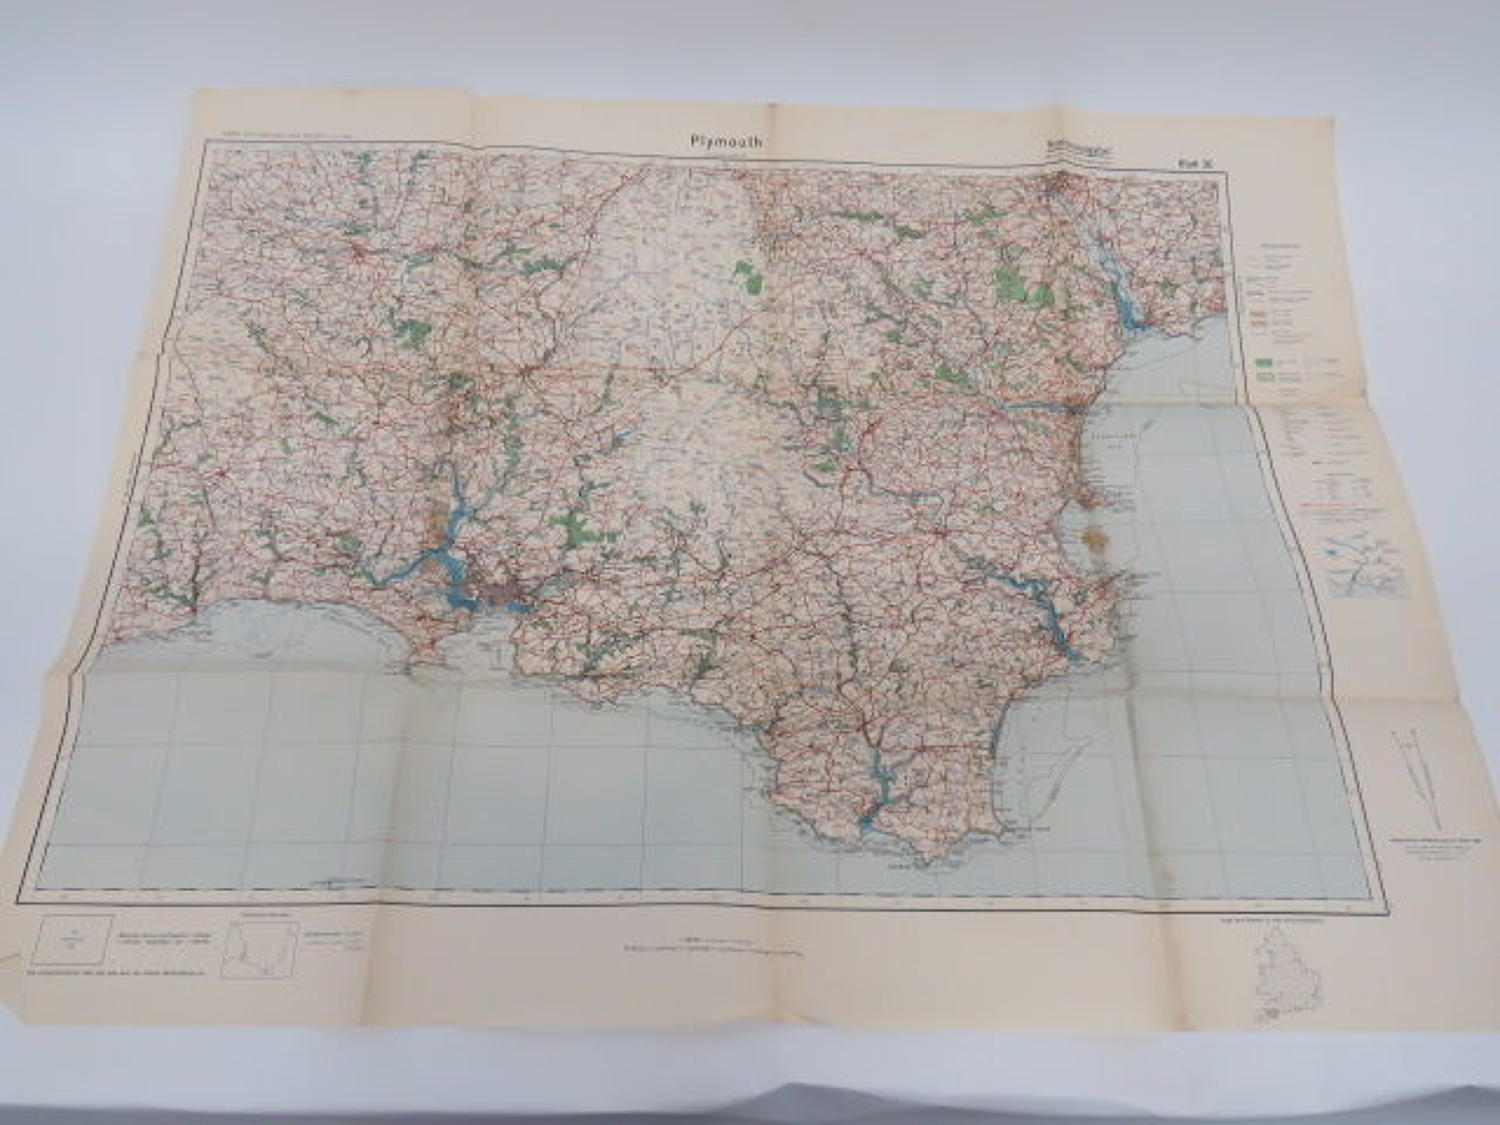 WW 2 German Invasion Map of Plymouth